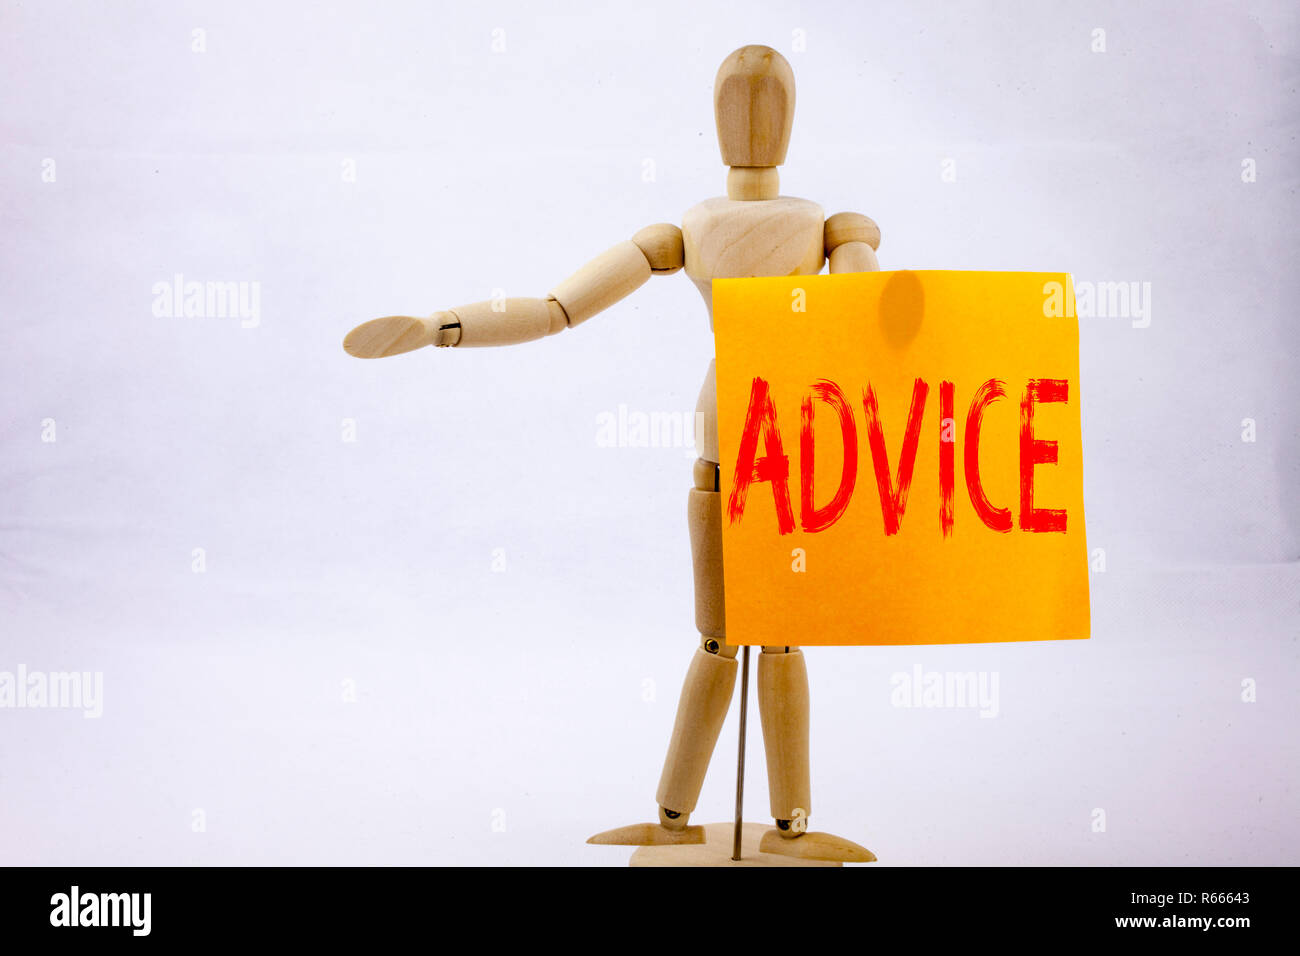 Conceptual hand writing text caption inspiration showing Advice Business concept for Suggestion guidance concept written on sticky note sculpture background with space - Stock Image